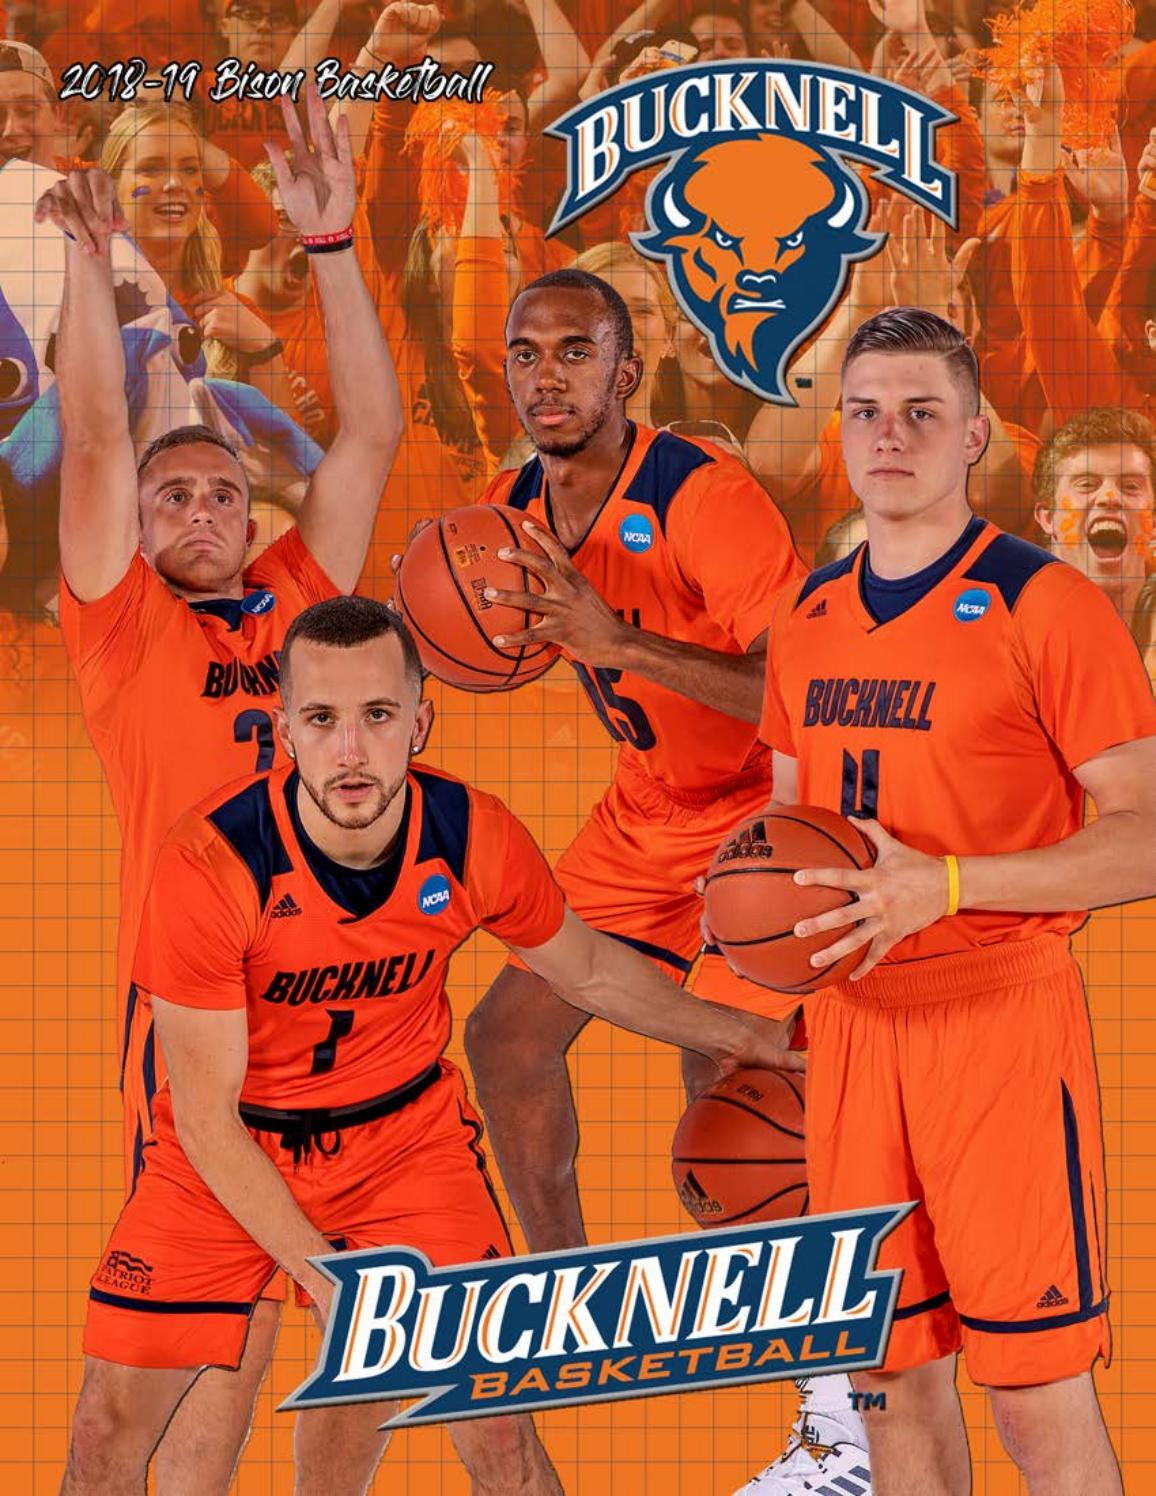 d209b36aab7980 2018-19 Men s Basketball Media Guide by Bucknell University - issuu